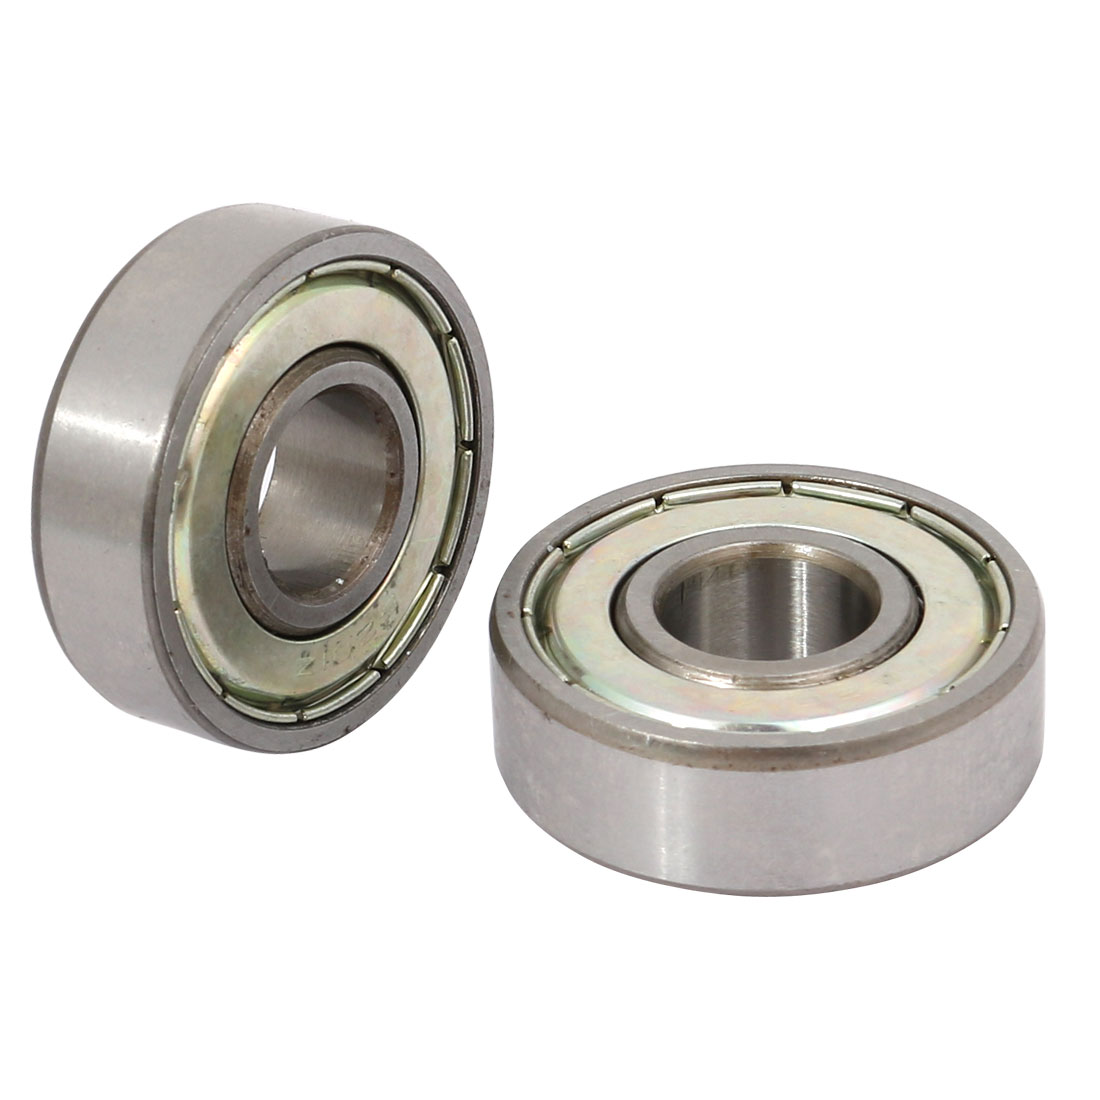 2 Pcs 6201 Dual Metal Shields Deep Groove Ball Bearing 12mm x 32mm x 10mm